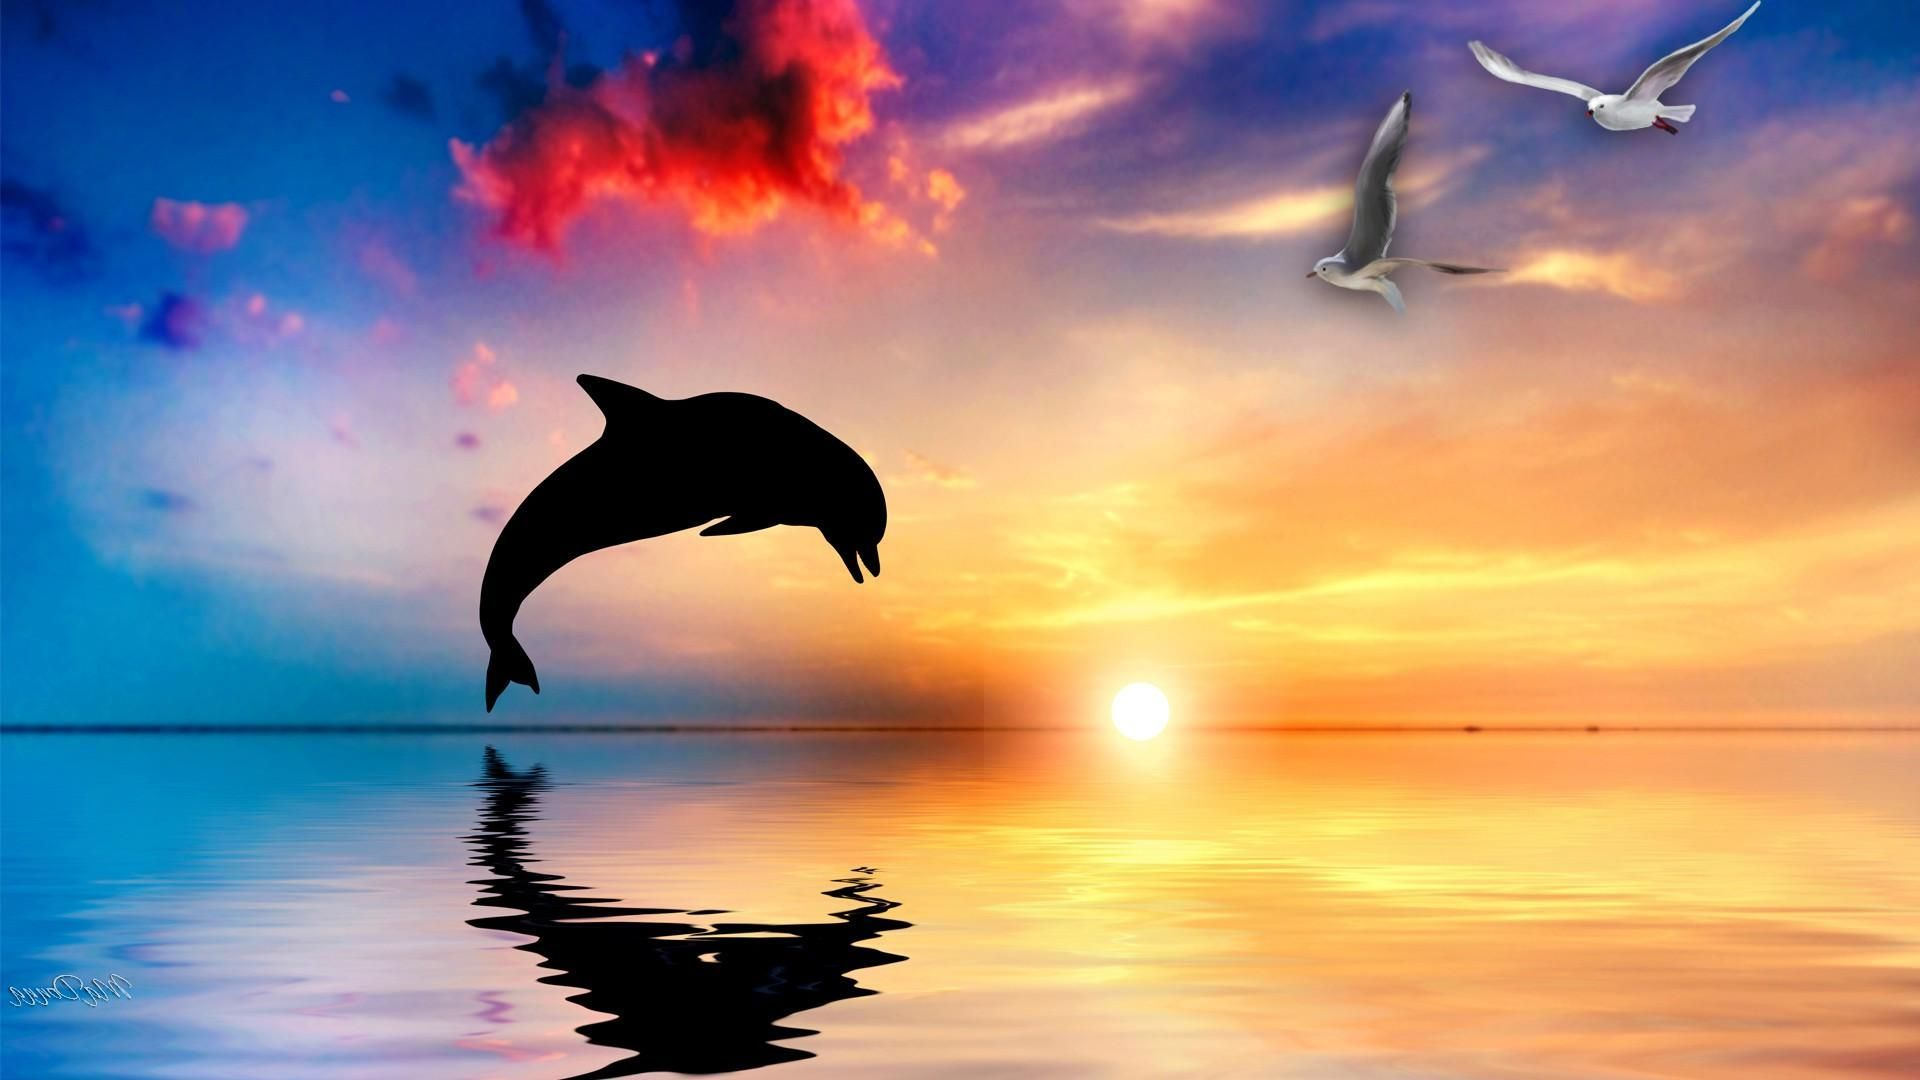 Dolphin Sunset Wallpapers Top Free Dolphin Sunset Backgrounds Wallpaperaccess Hd wallpaper dolphins sunset sky pink